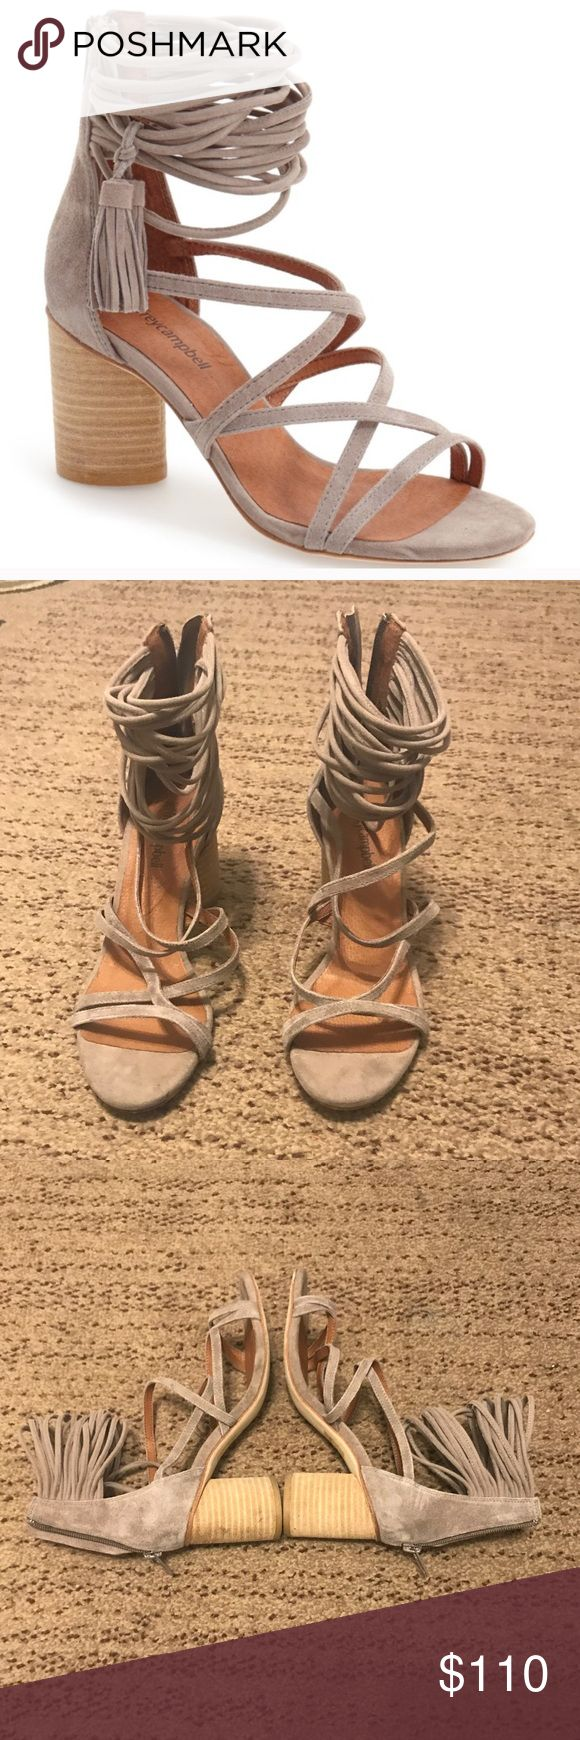 Jeffery Campbell Despina Strappy Sandals Jeffery Campbell Despina Strappy Sandals. Size 6.5. In great condition. The tassels are missing, but still super cute! Compliments any outfit! Purchased from Nordstroms. Jeffrey Campbell Shoes Sandals